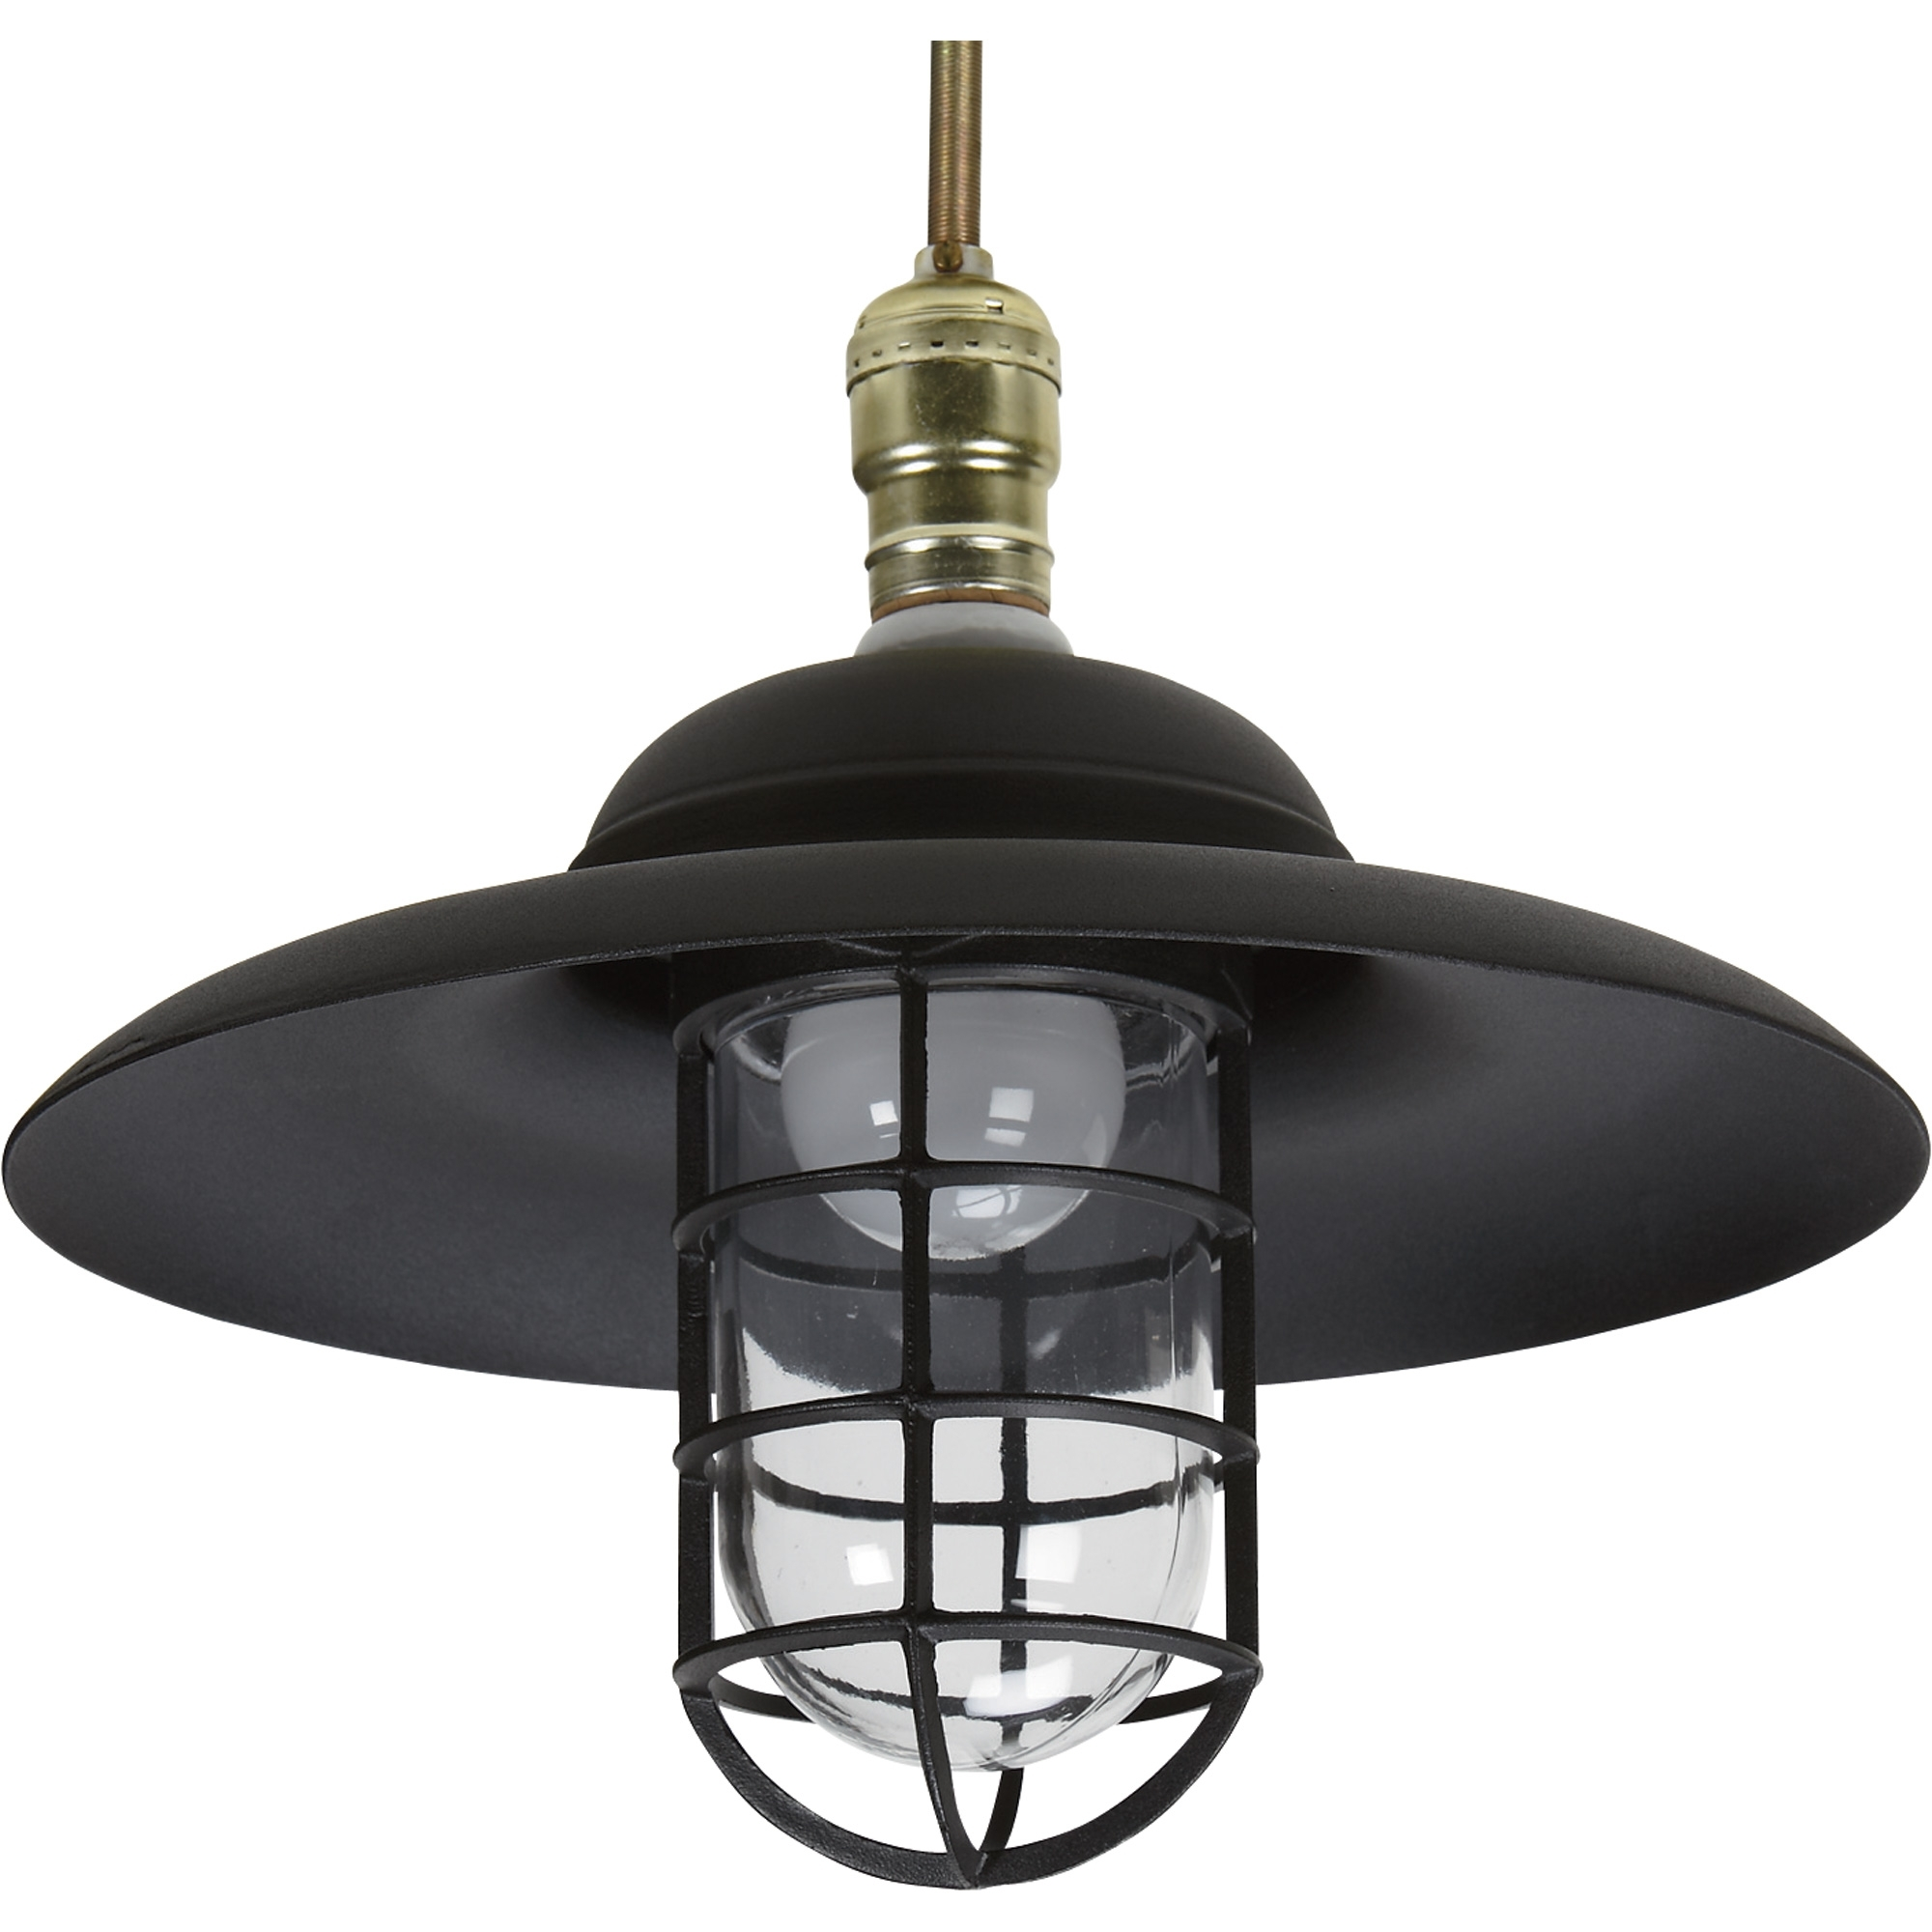 Outdoor Light : Extraordinary Outdoor Barn Lights For Sale , Pottery Intended For Outdoor Hanging Barn Lights (#13 of 15)